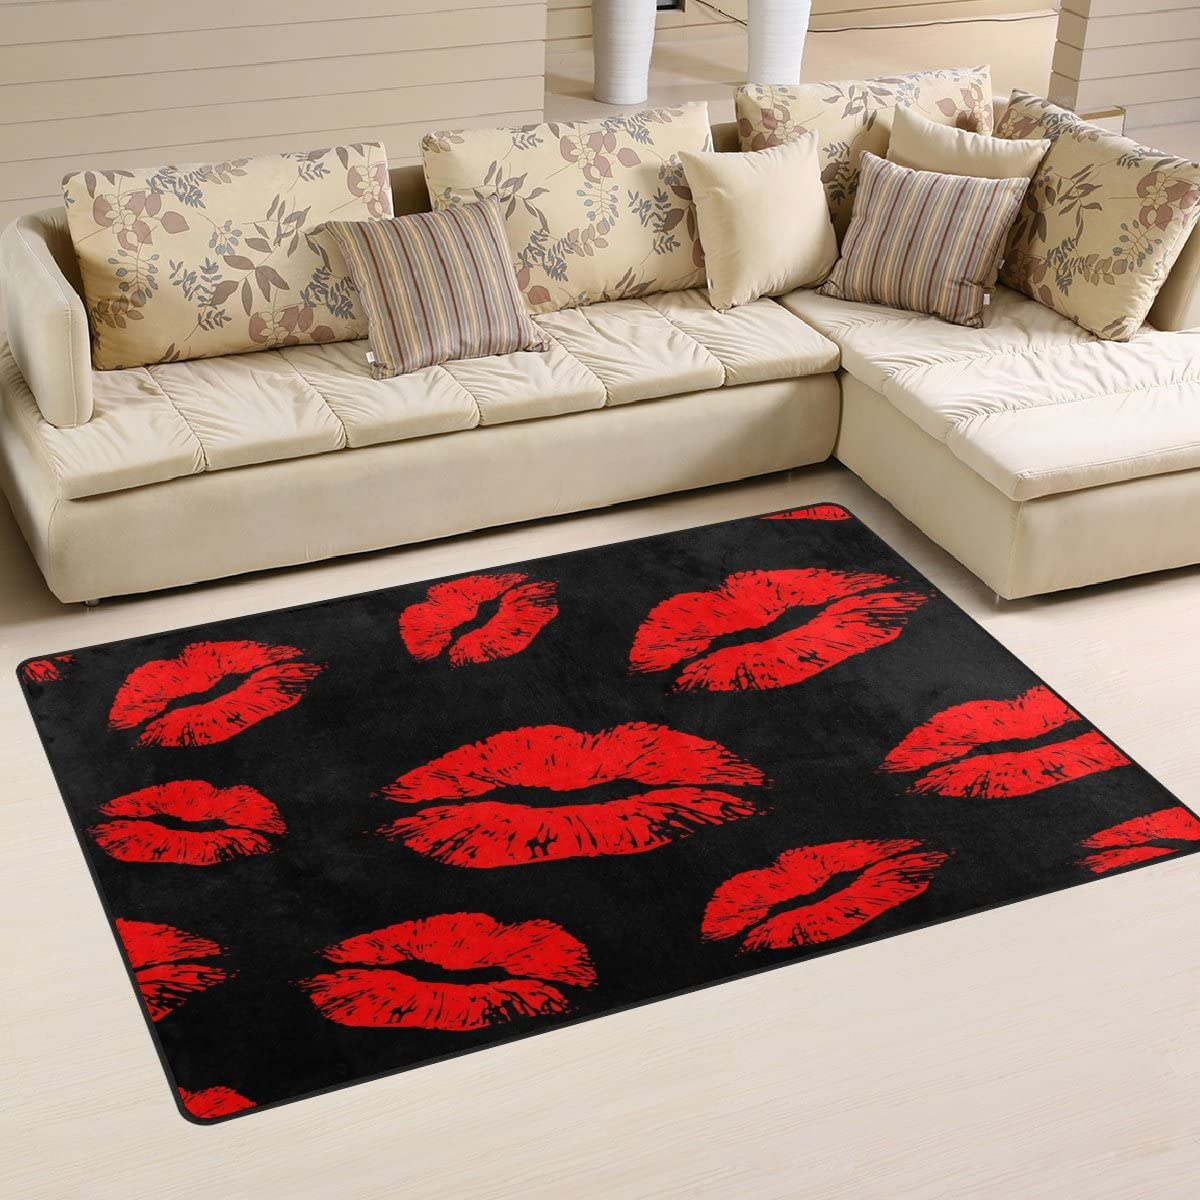 WOZO Red Lips Black Area Rug Rugs Non-Slip Floor Mat Doormat